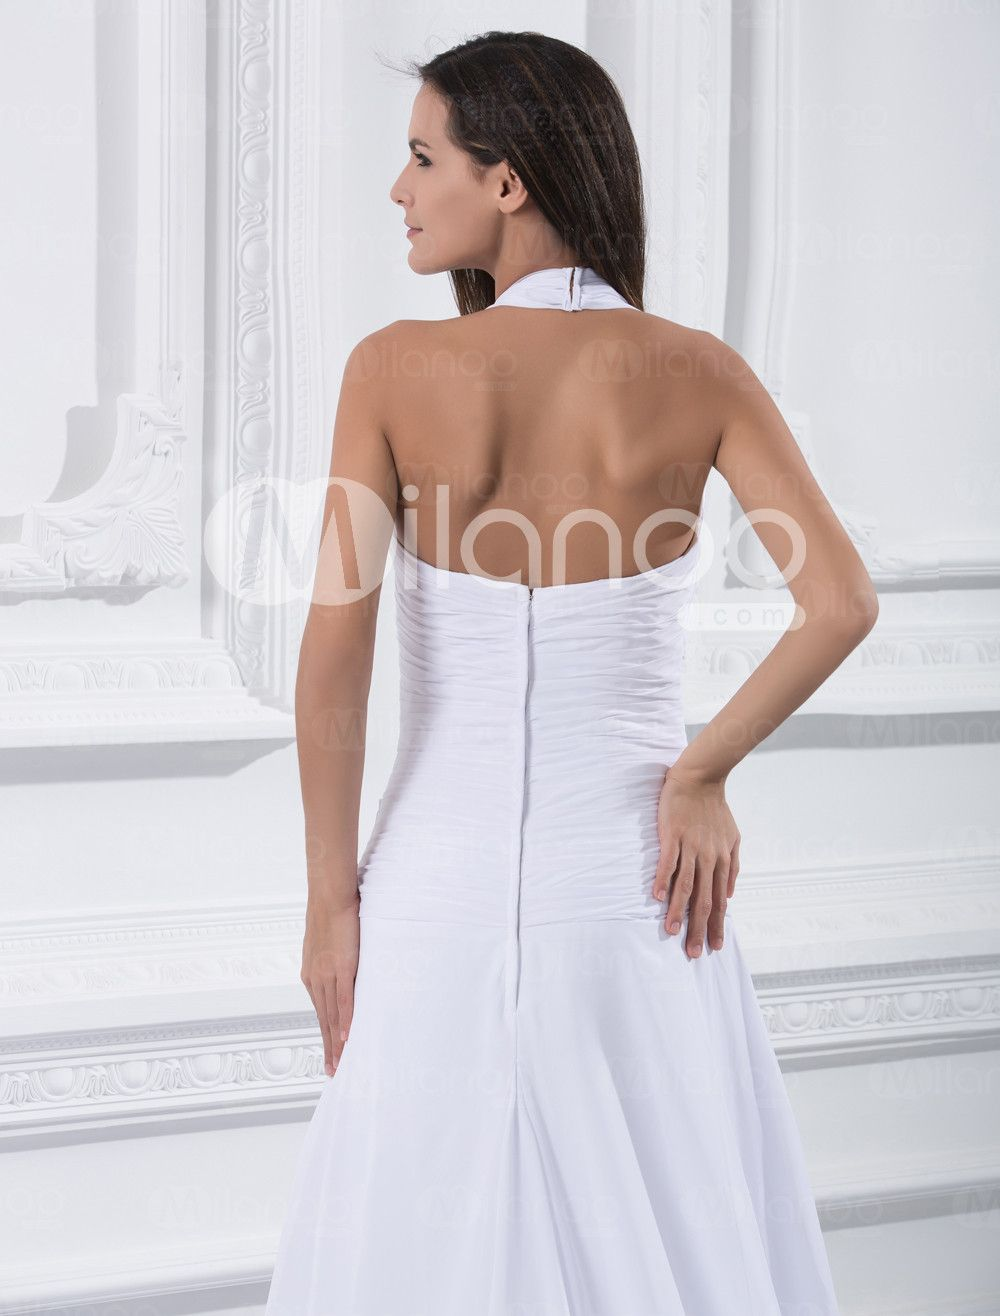 Wedding dresses oahu  Elegant White Chiffon Aline Halter Wedding Dress  White fashion